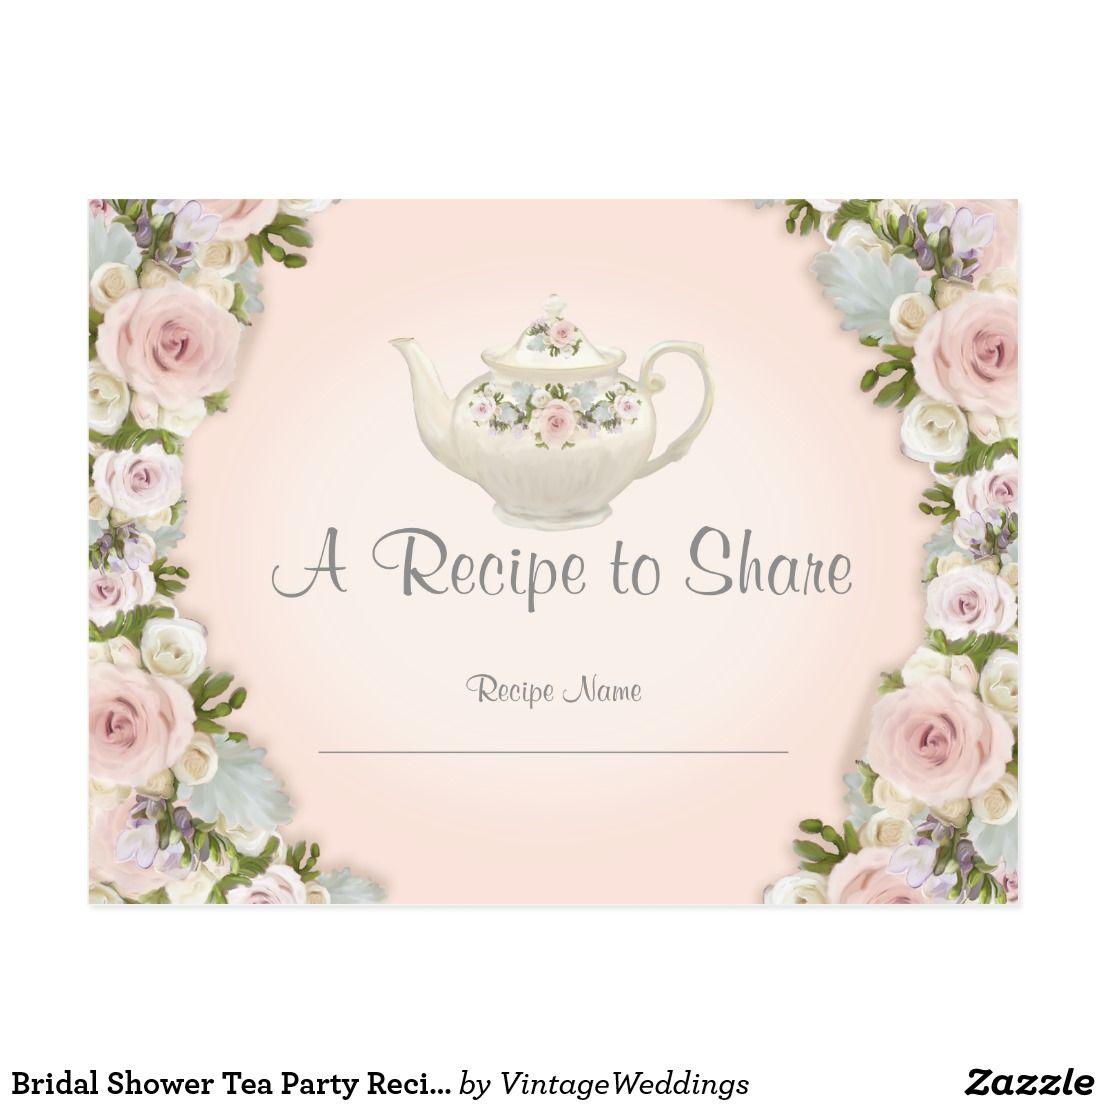 where can i buy recipe cards